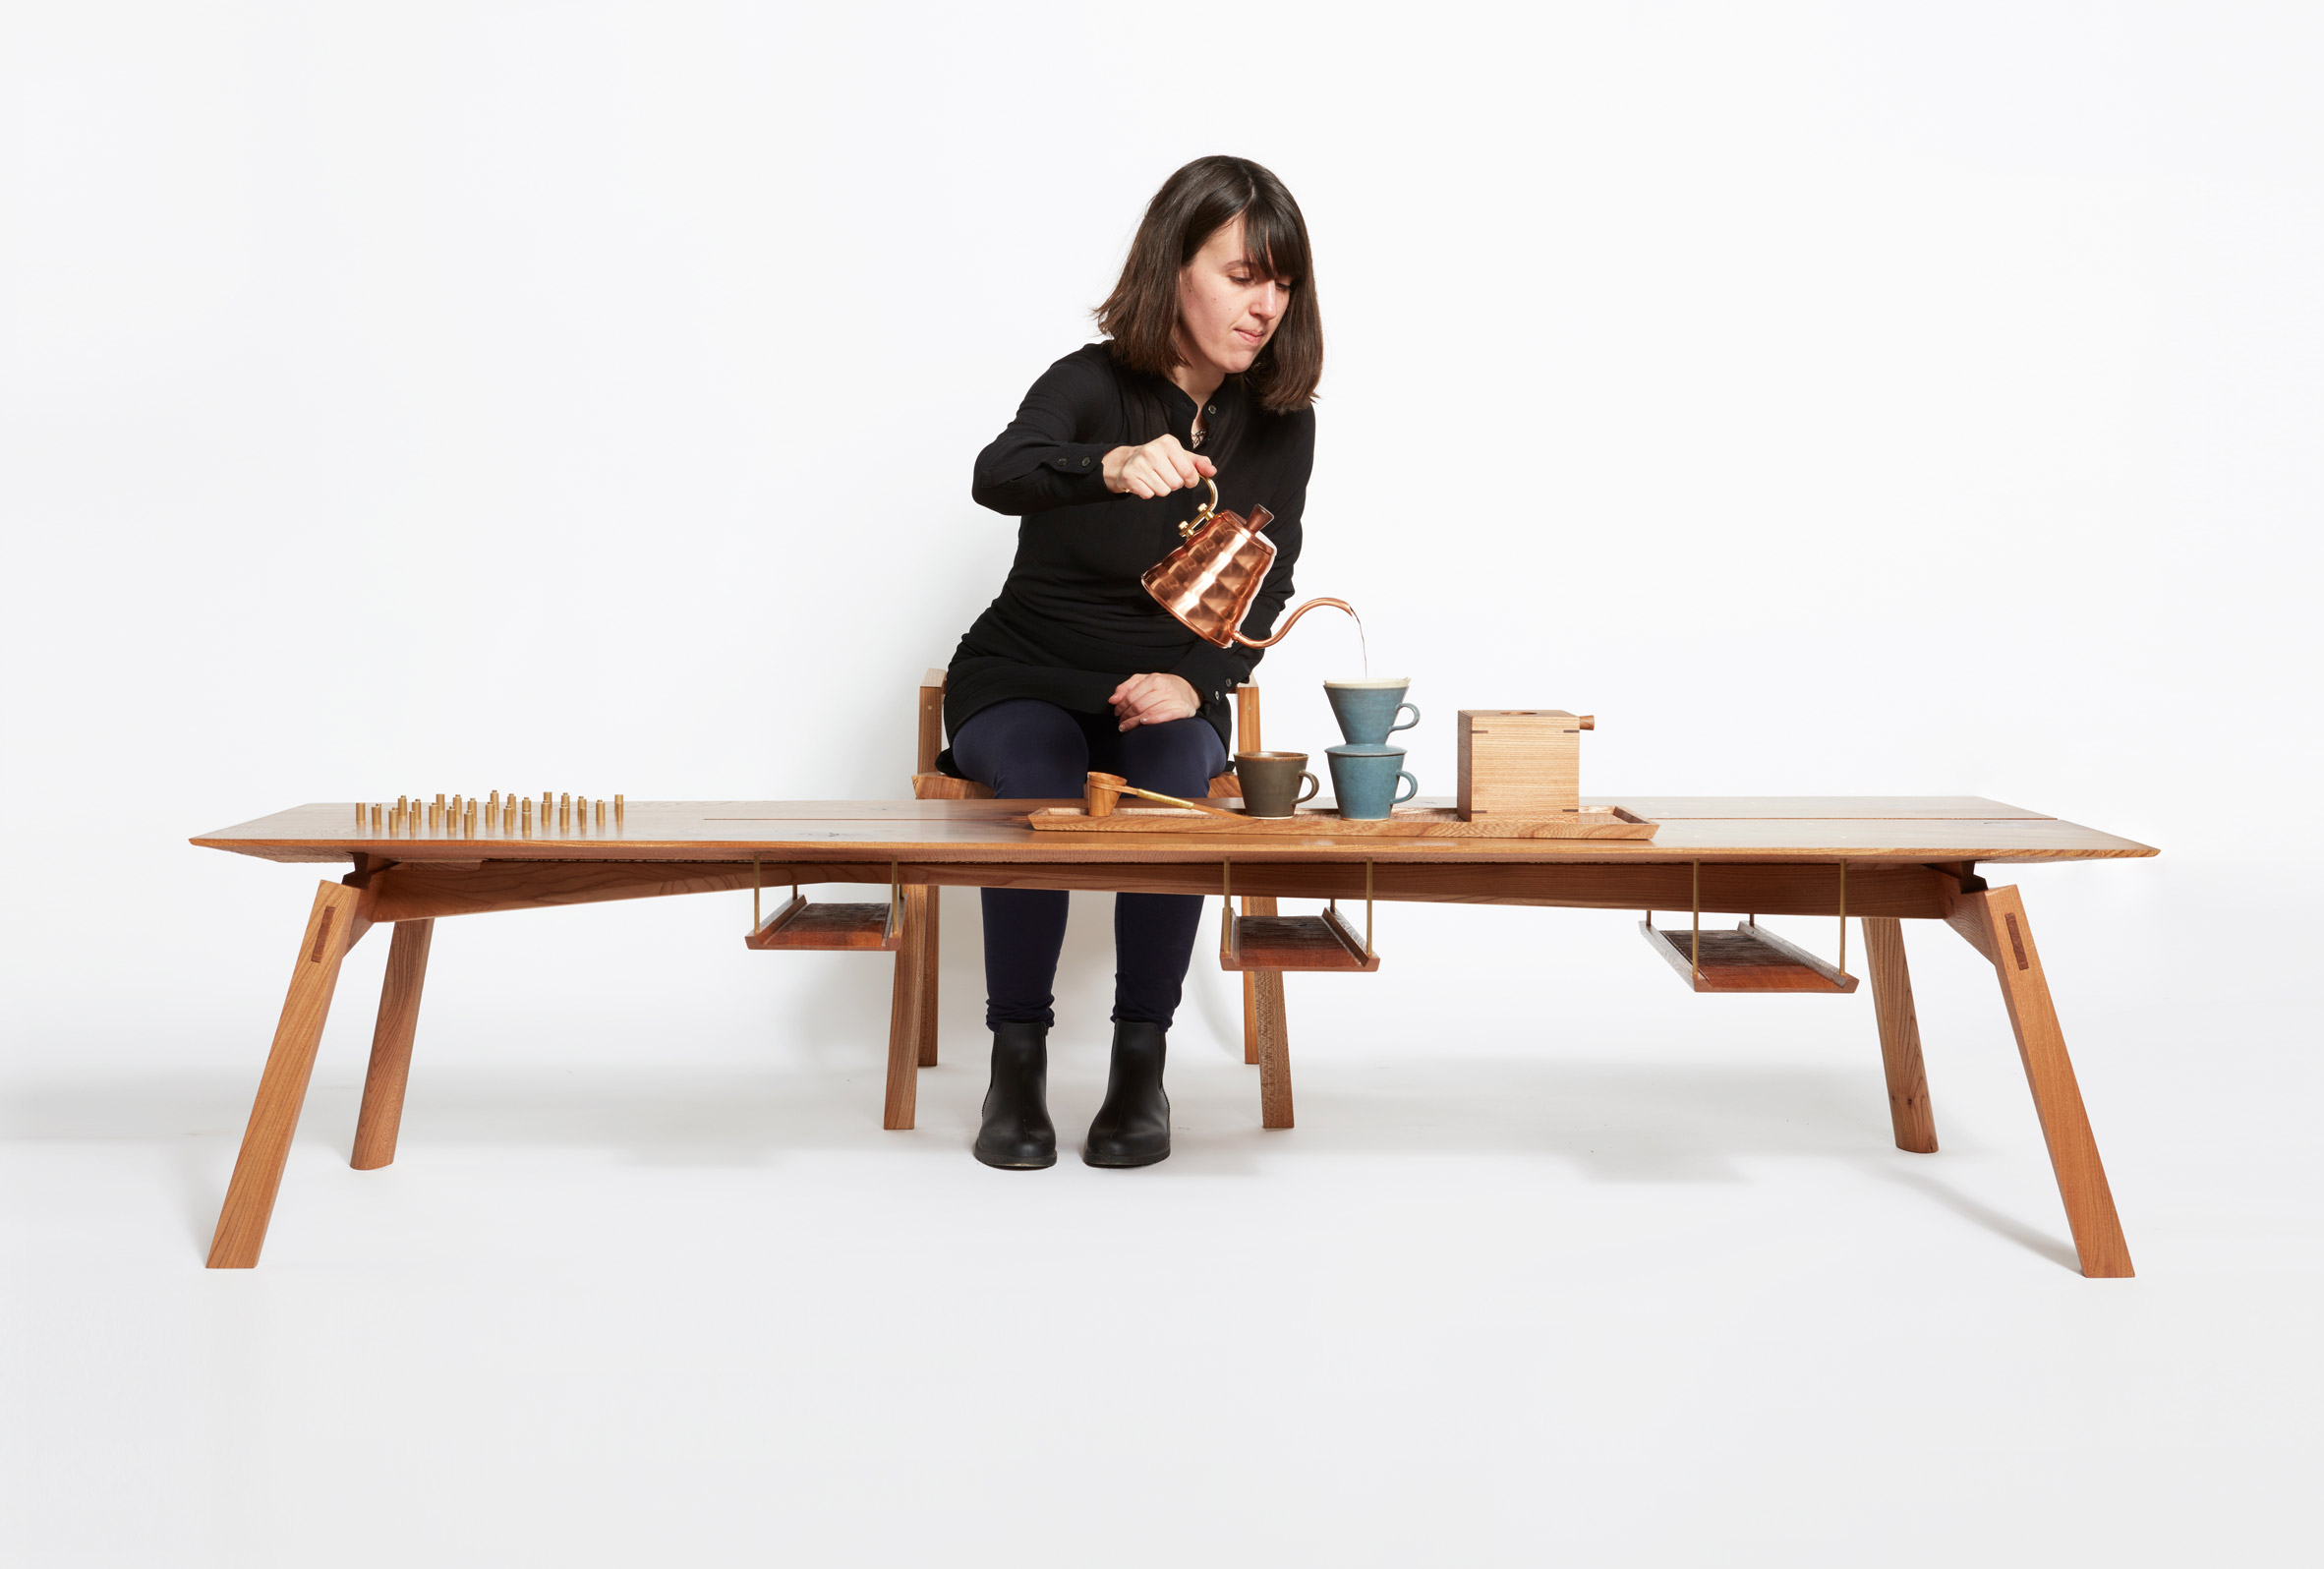 the-coffee-ceremony-hugh-miller-furniture-design-chair-table_dezeen_2364_col_14